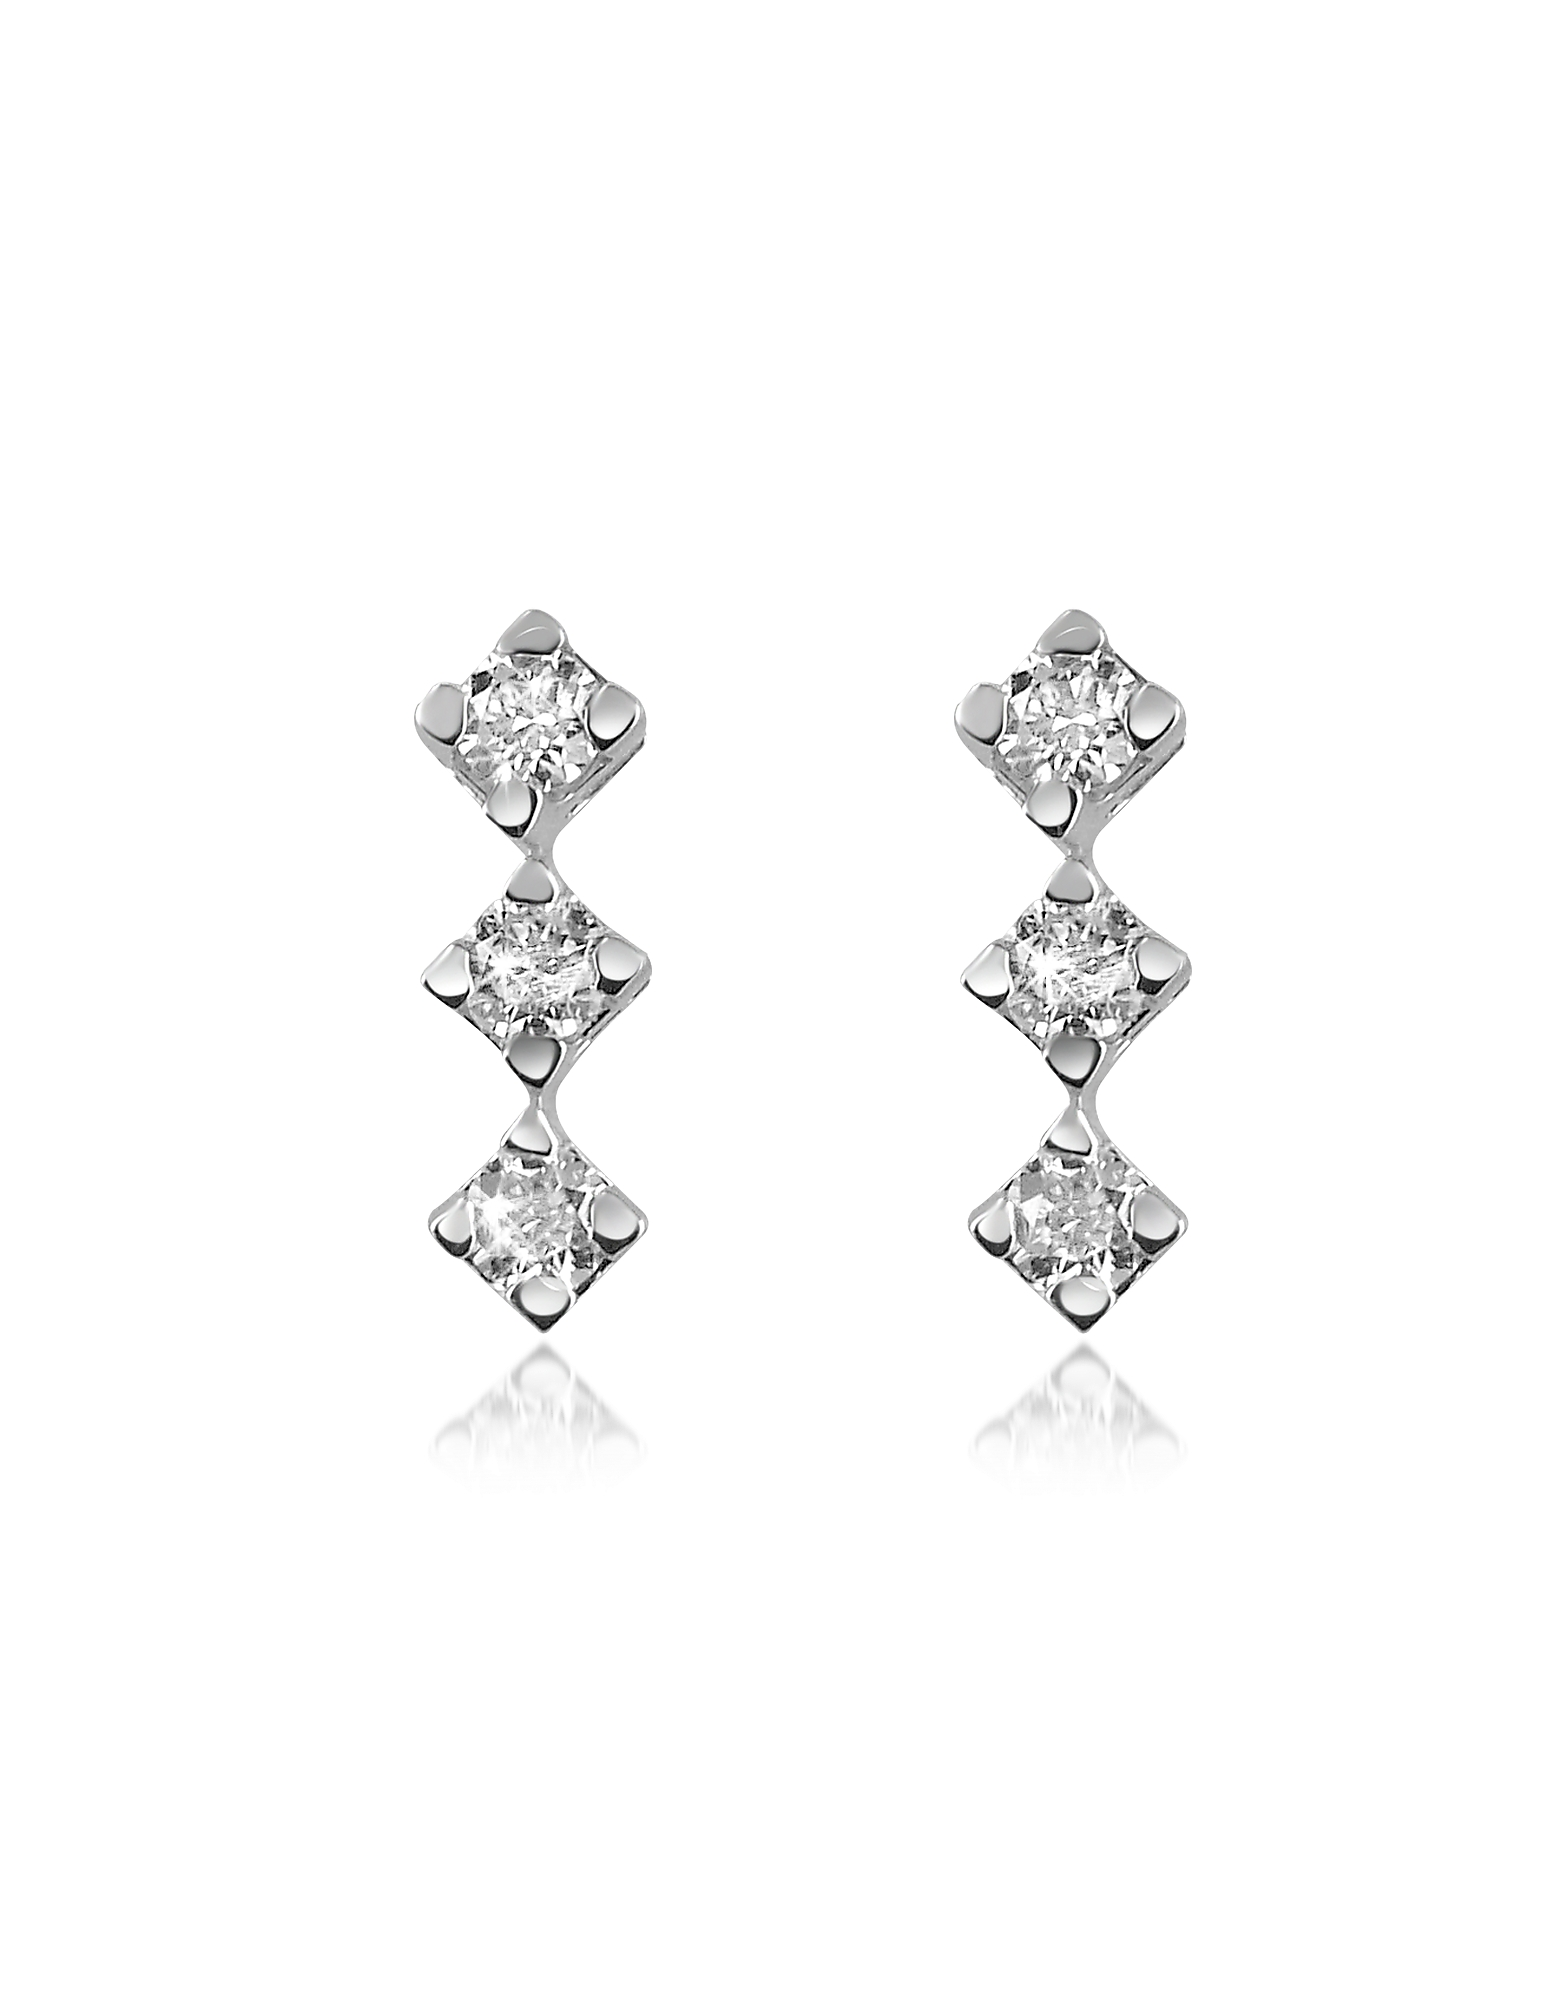 Forzieri Earrings, 0.24 ct Diamond Drop 18K Gold Earrings